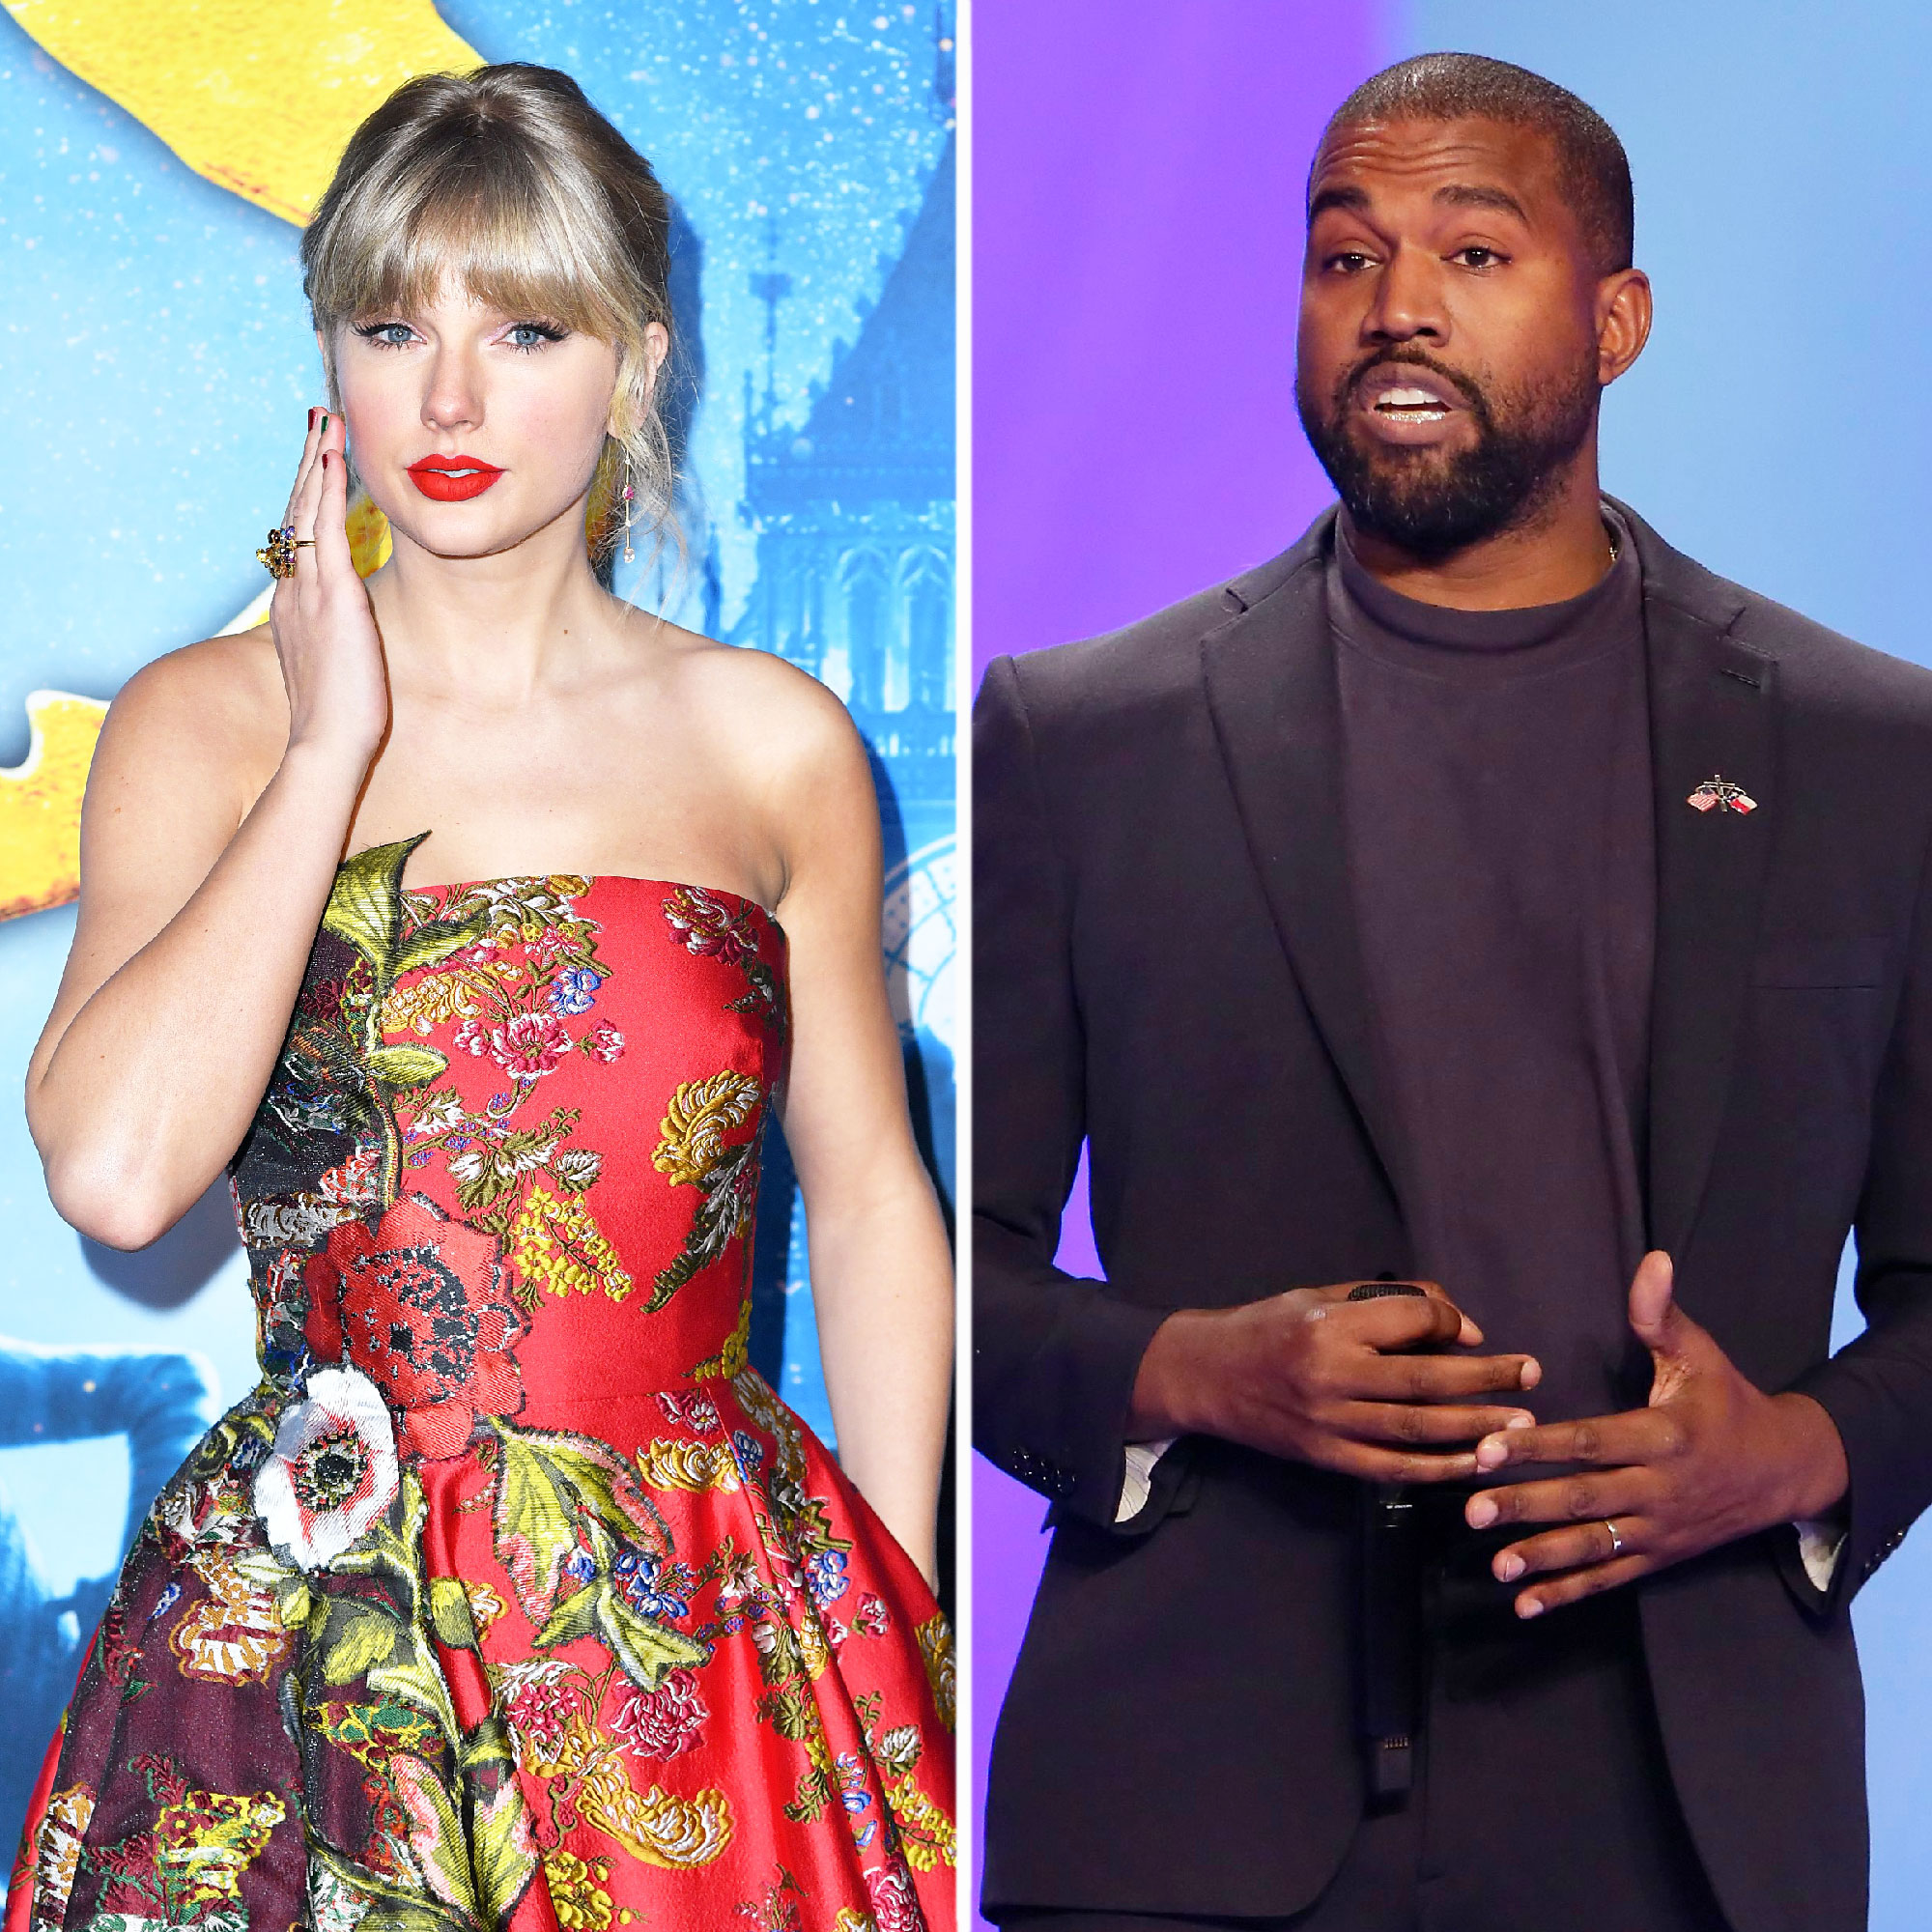 Taylor Swift And Kanye West S Unedited Famous Phone Conversation Leaked